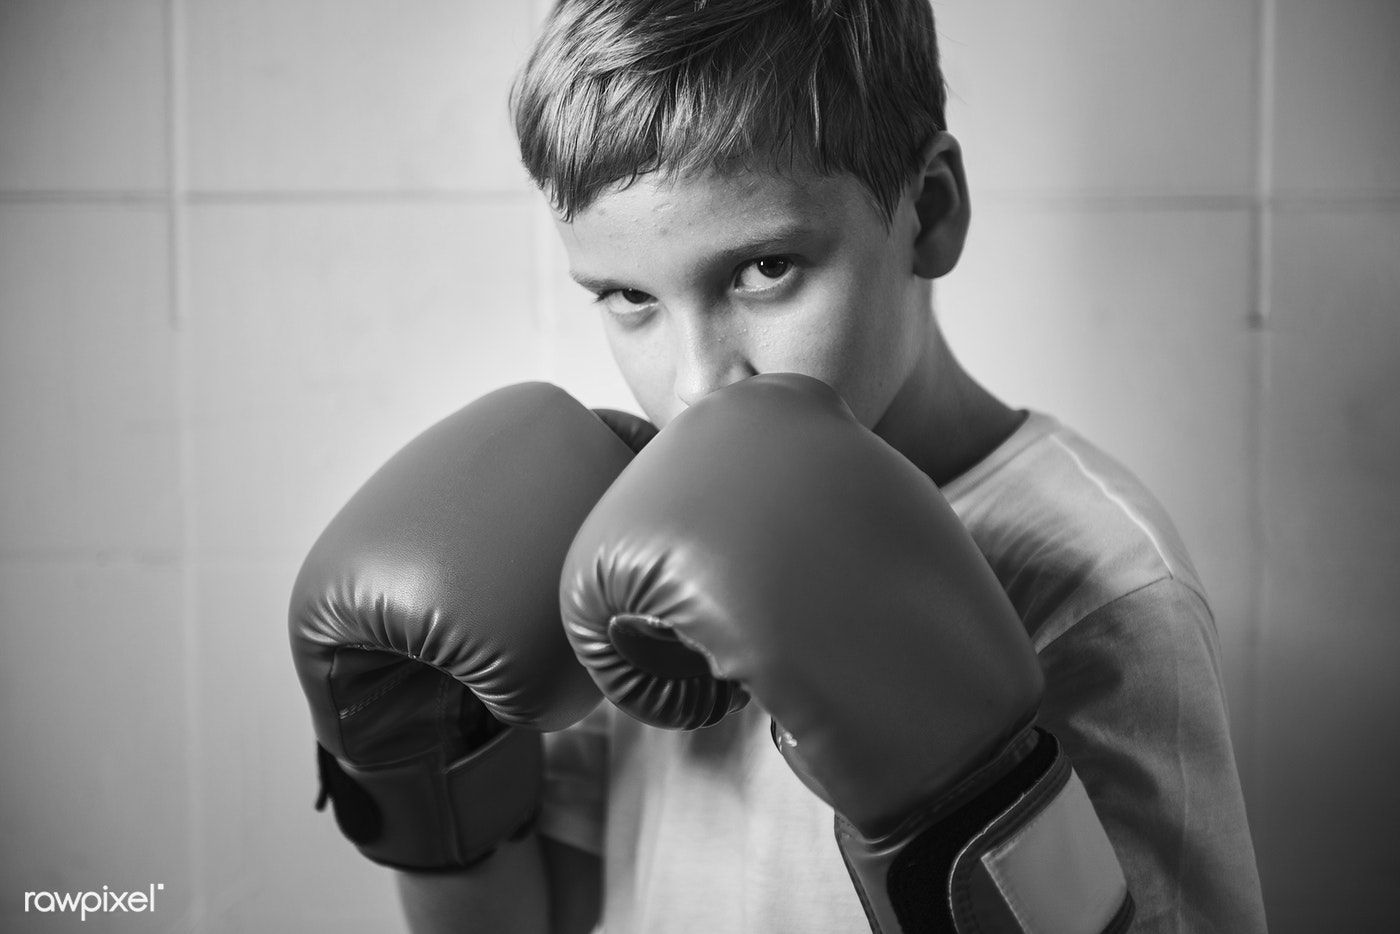 Tough Young Boy In A Boxing Pose